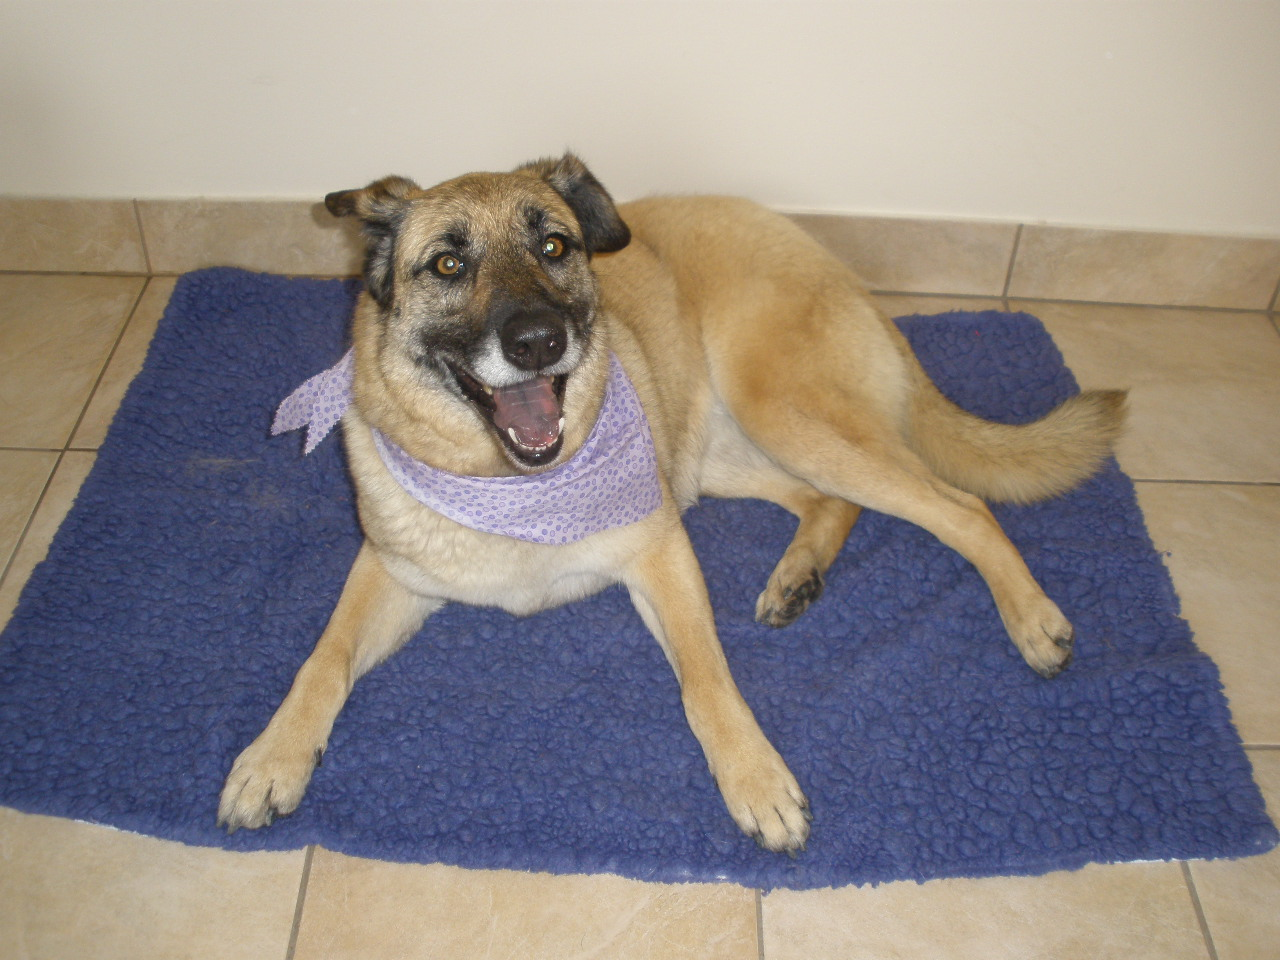 Honey - Our Foster Dog